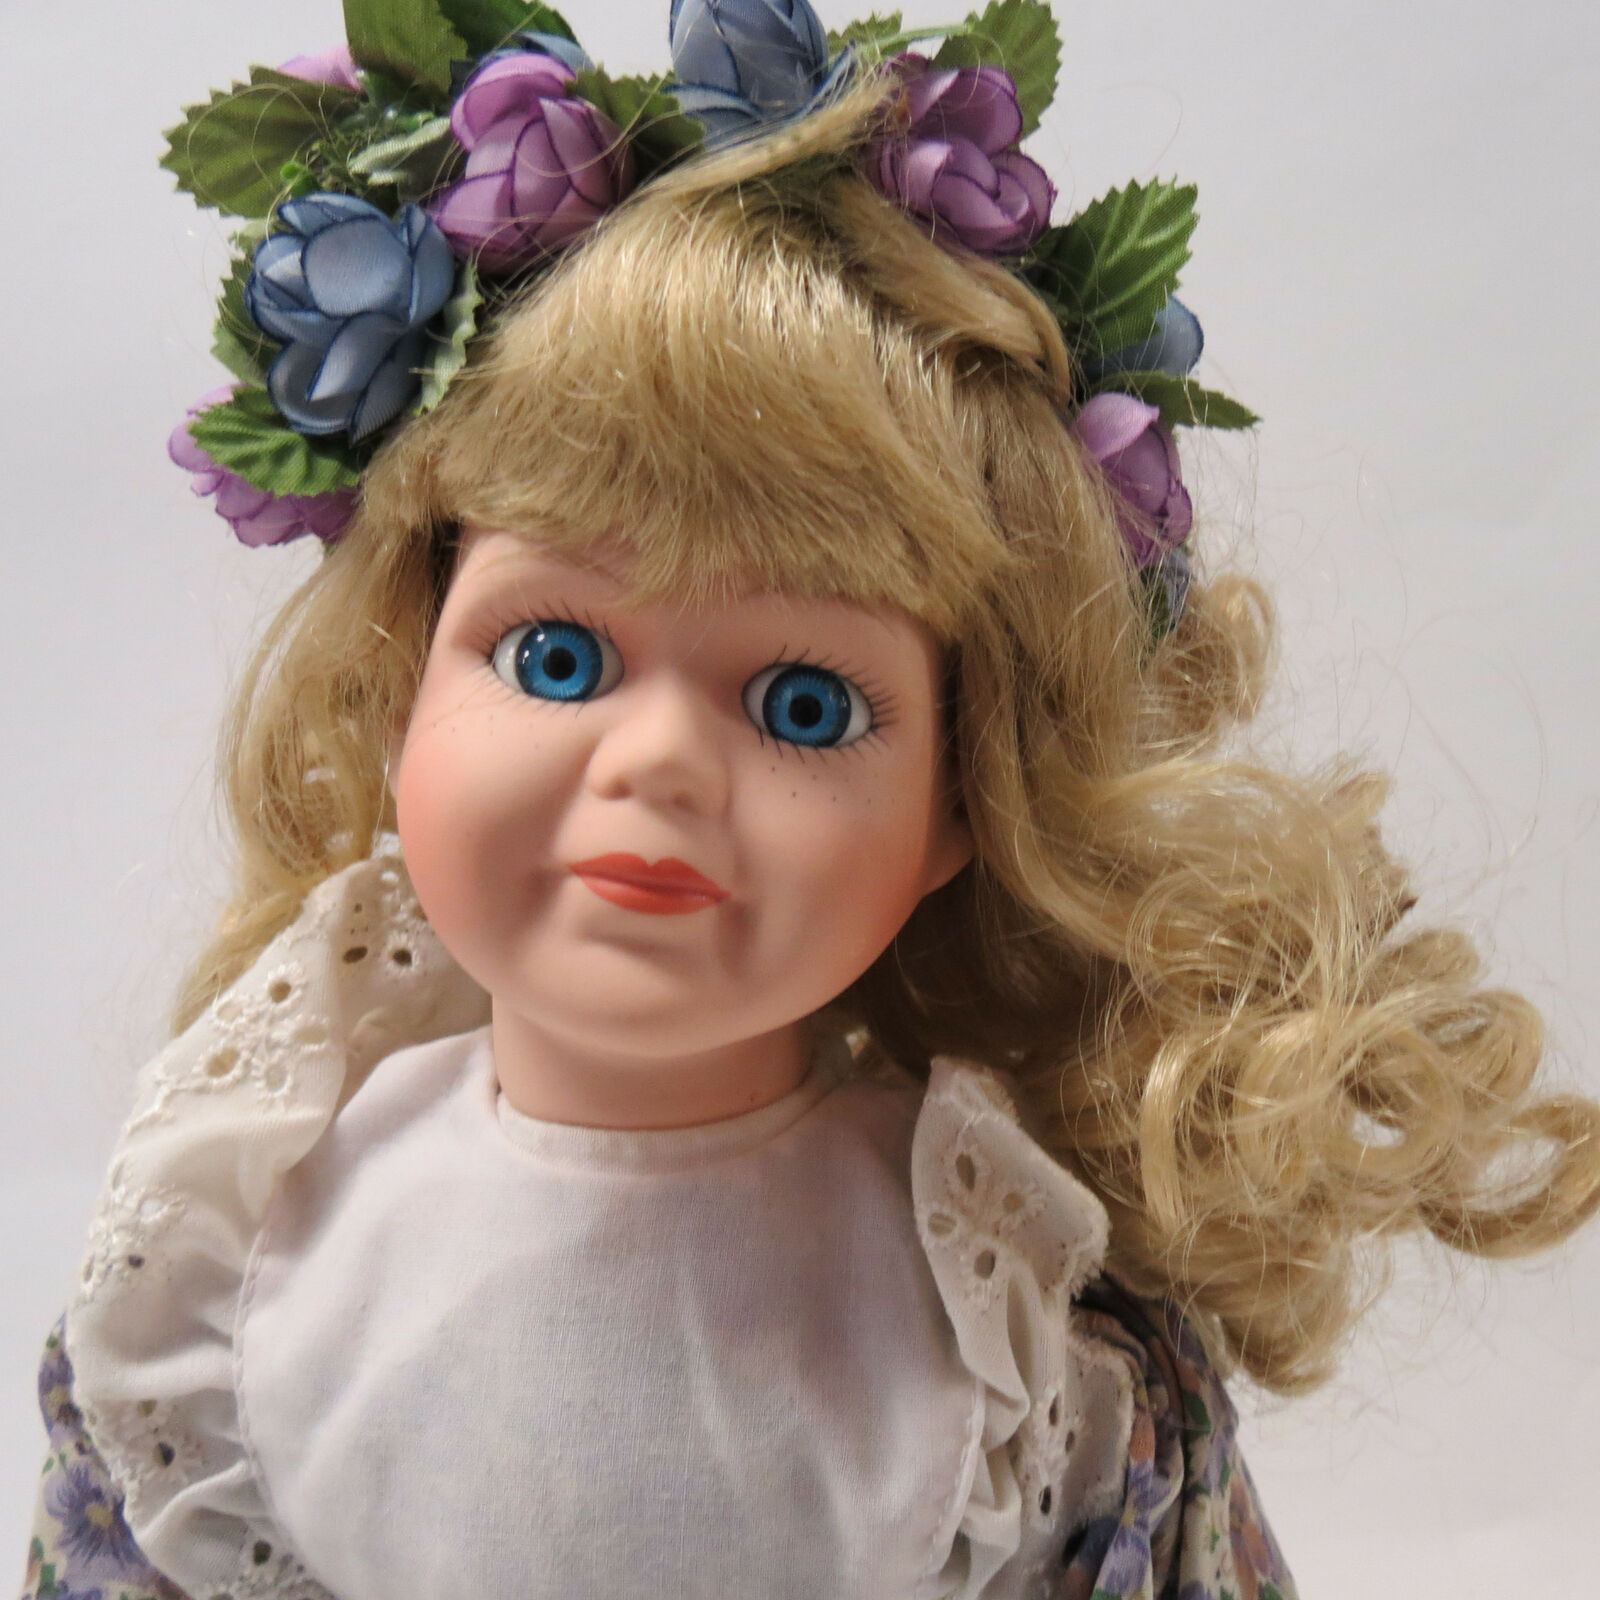 VTG Bisque Porcelain Doll Heritage Mint Collection bianca viola Floral Dress